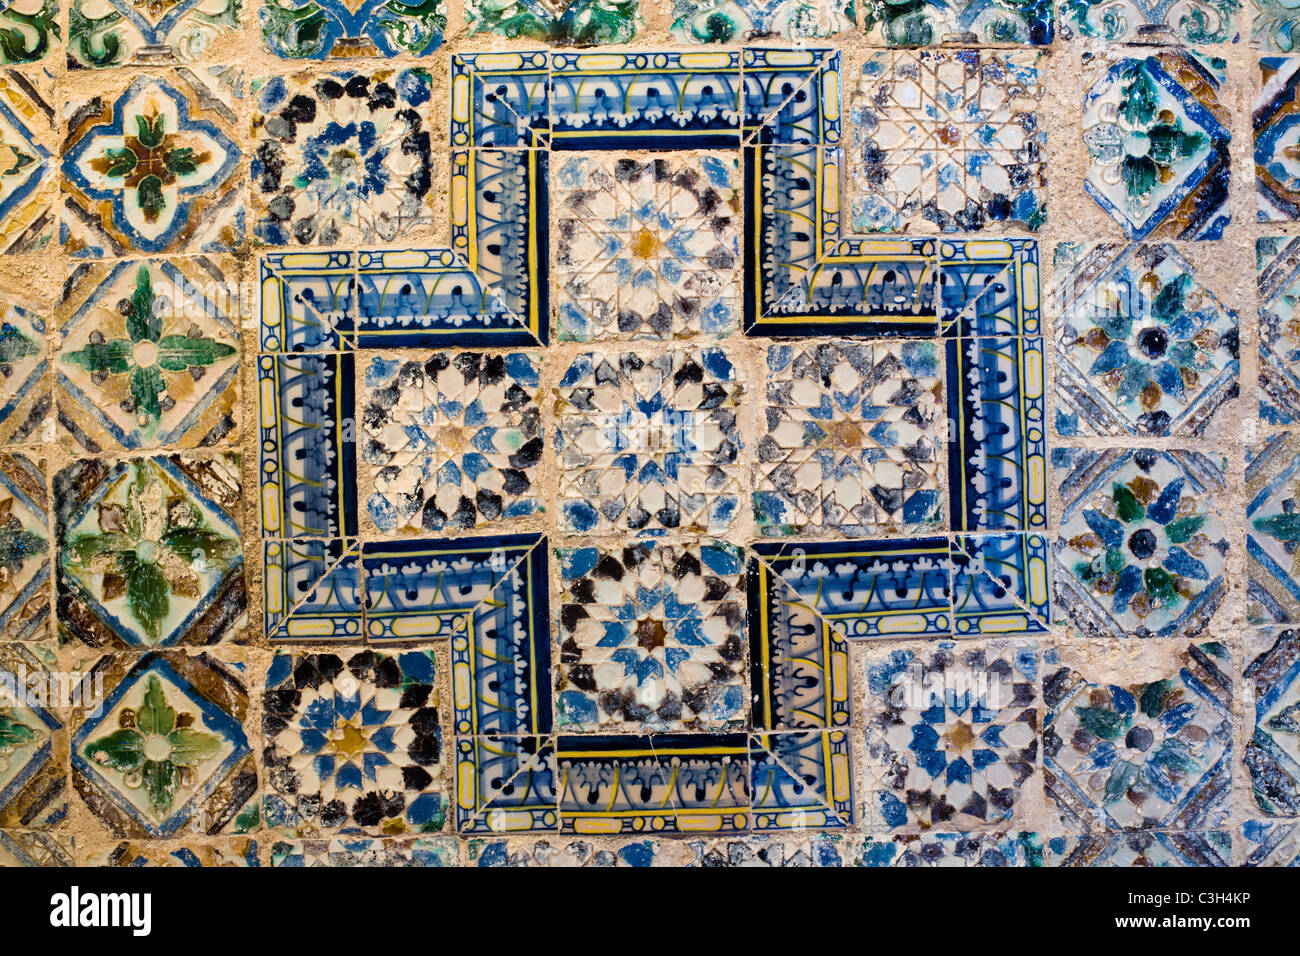 Azulejos from 16th century, Sobral, Portugal - Stock Image